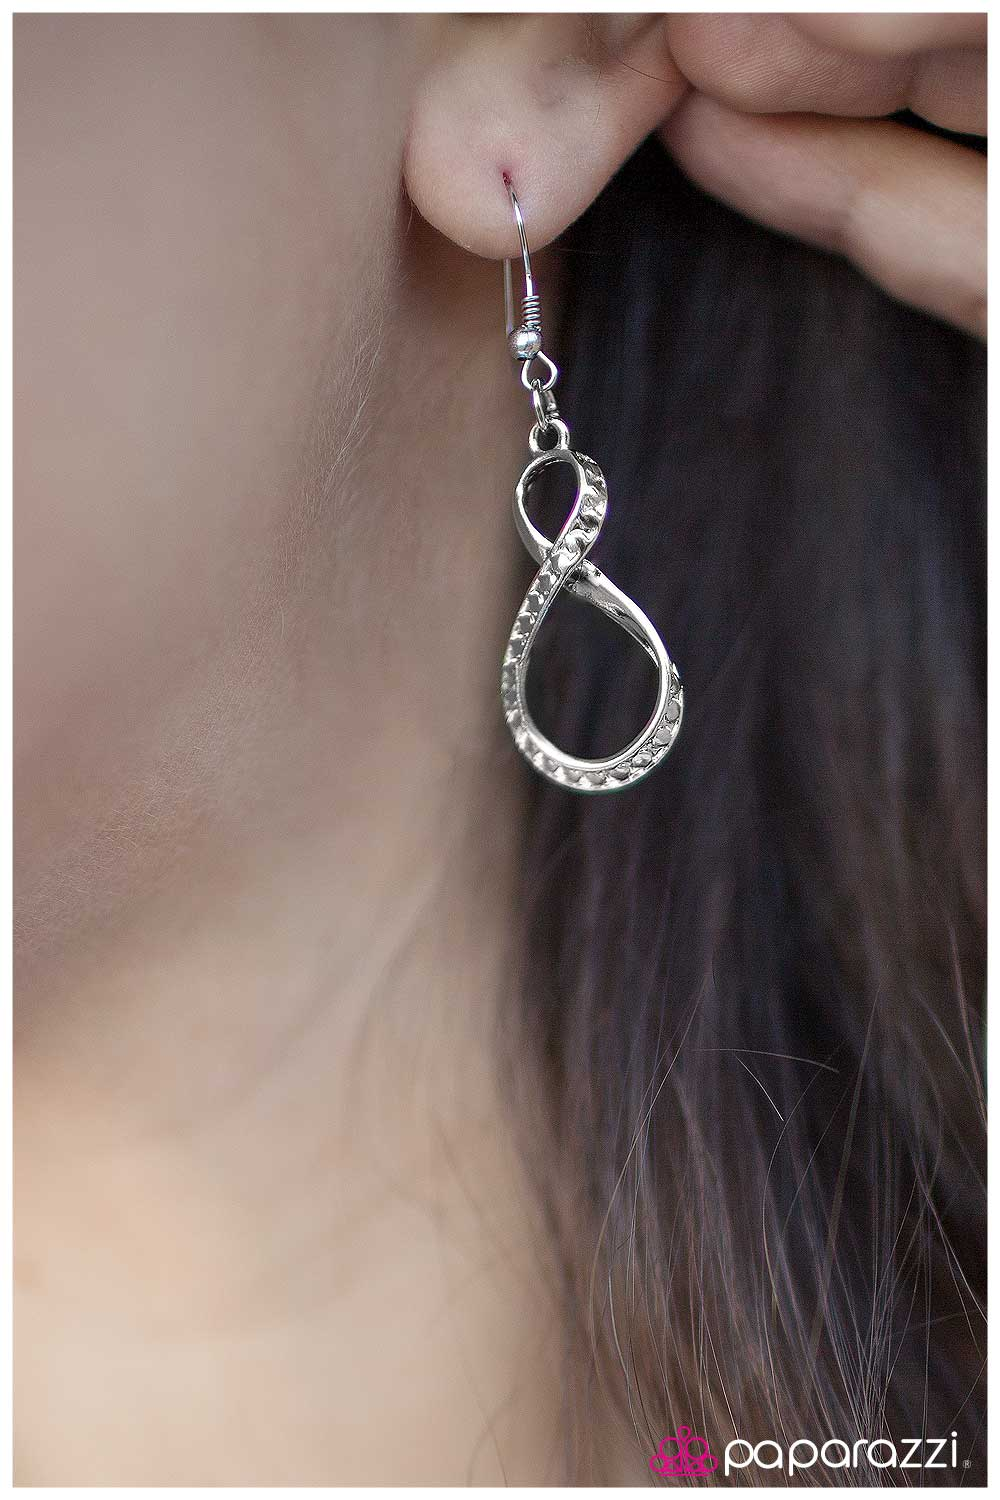 Without Further Ado - Silver - Paparazzi earrings